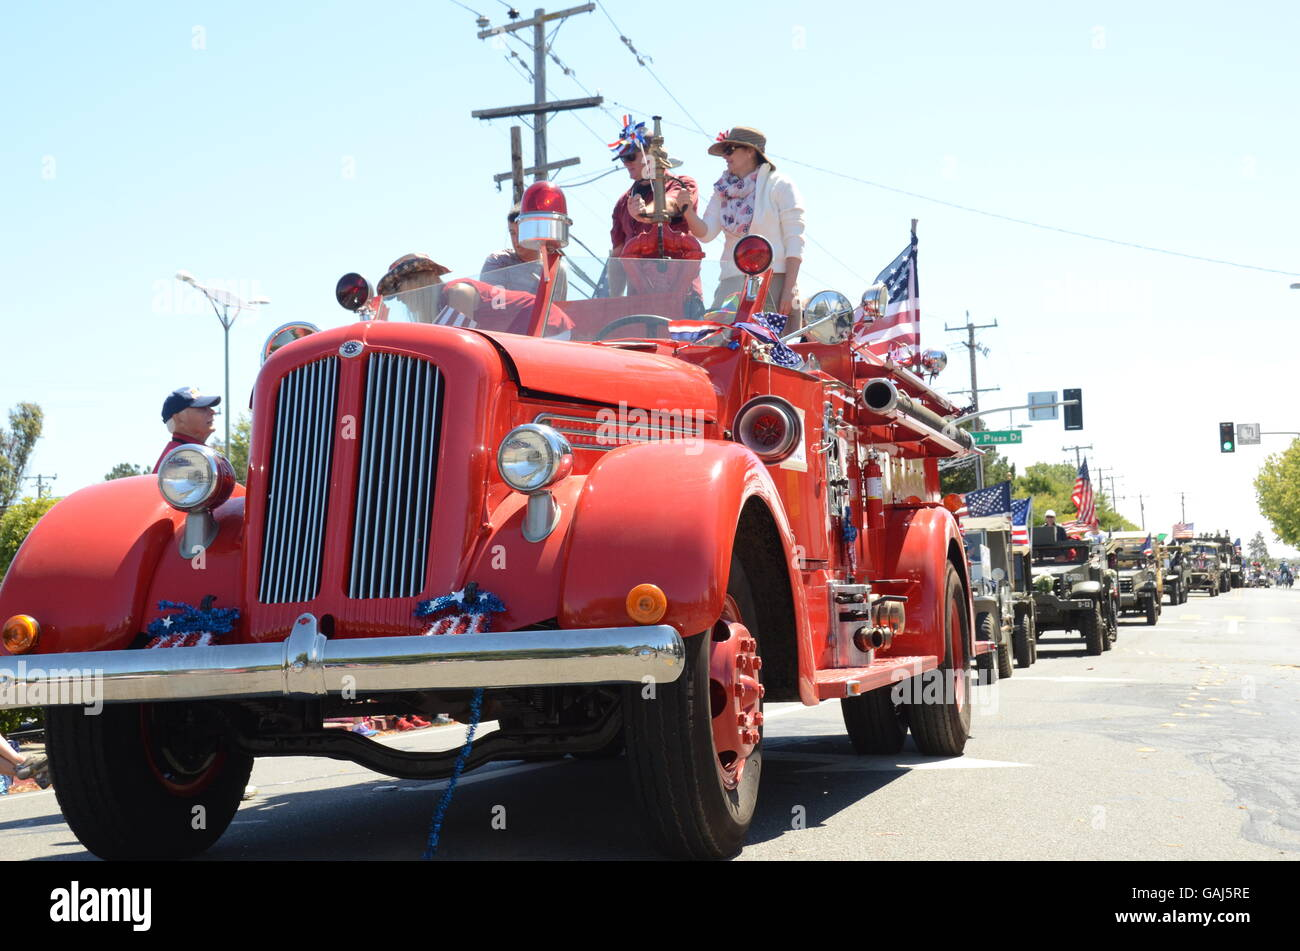 The Twin Cities Fourth of July parade has the towns of Corte Madera and Larkspur, California celebrate the holiday - Stock Image